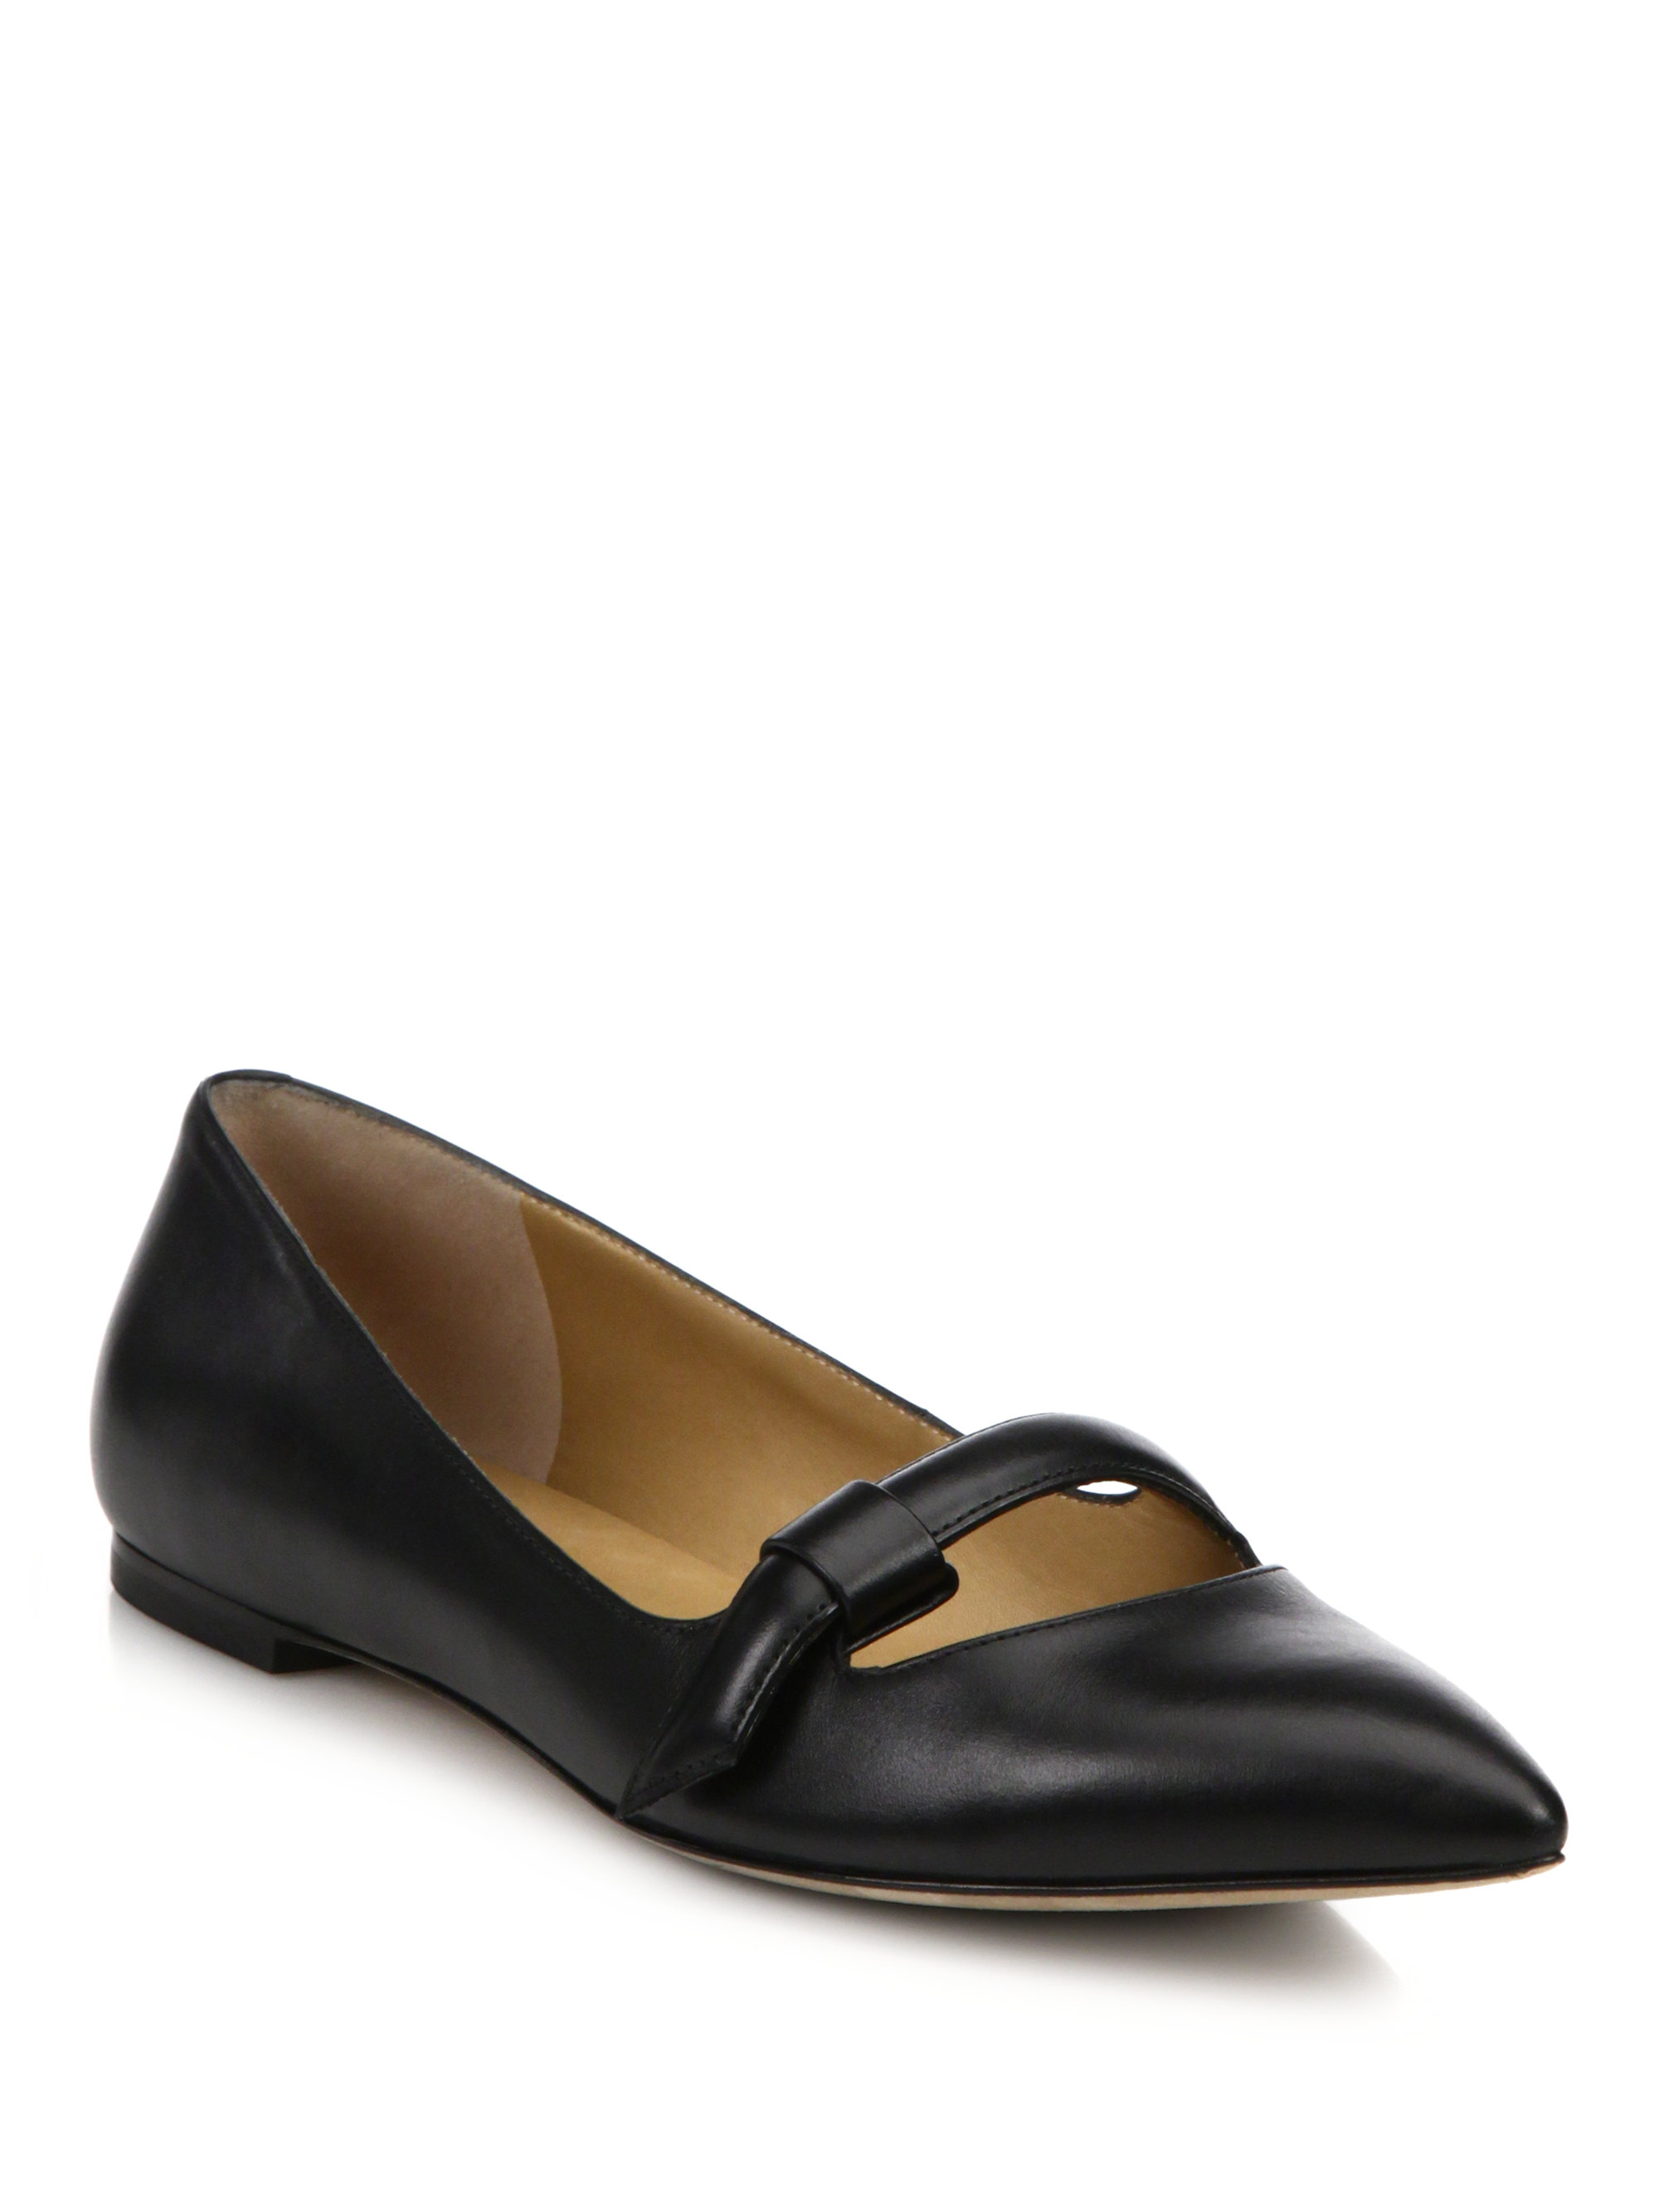 Marc by marc jacobs Seditionary Point-toe Mary Jane Flats ...